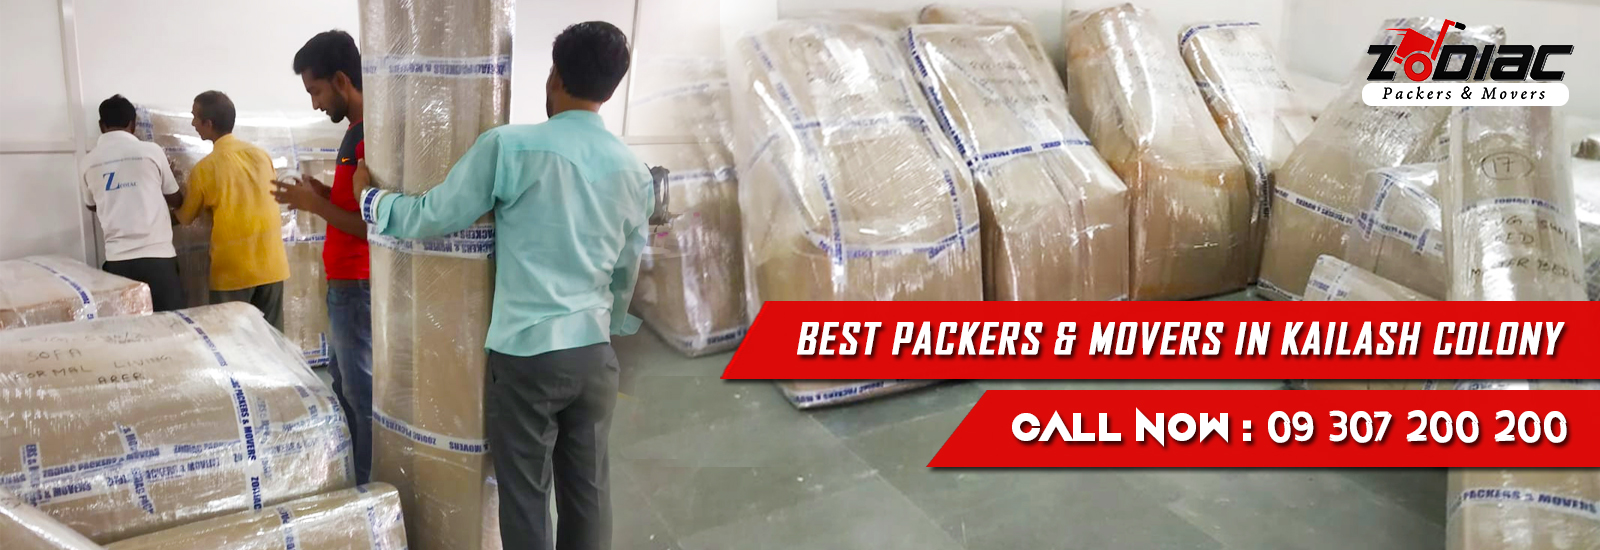 Packers and Movers in Kailash Colony